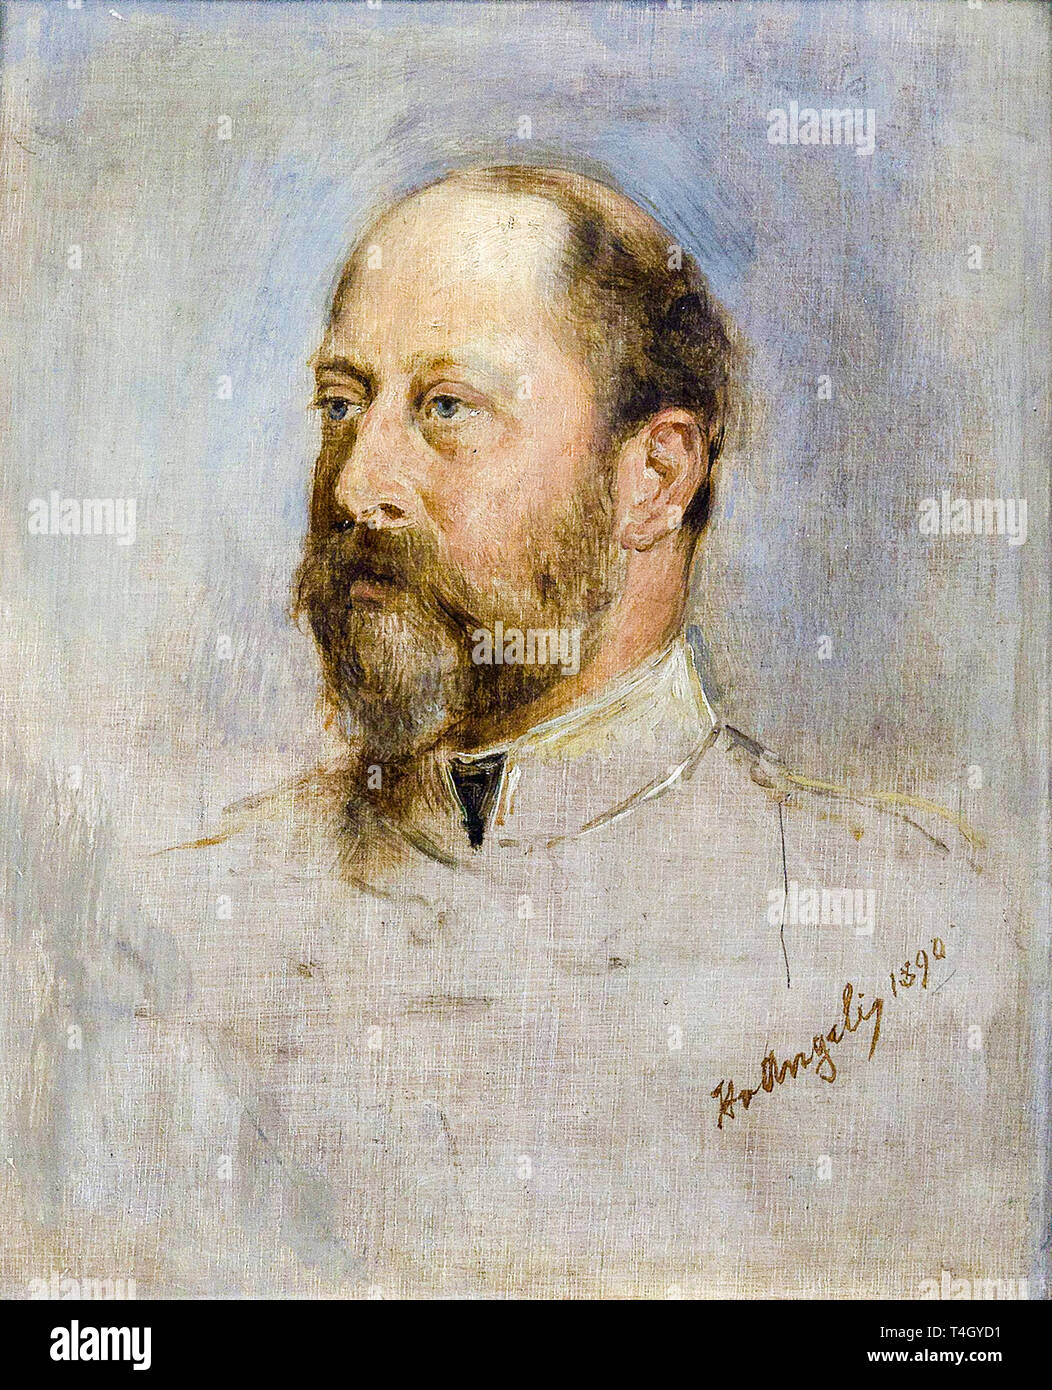 Heinrich von Angeli, King Edward VII, portrait painting, 1890 Stock Photo